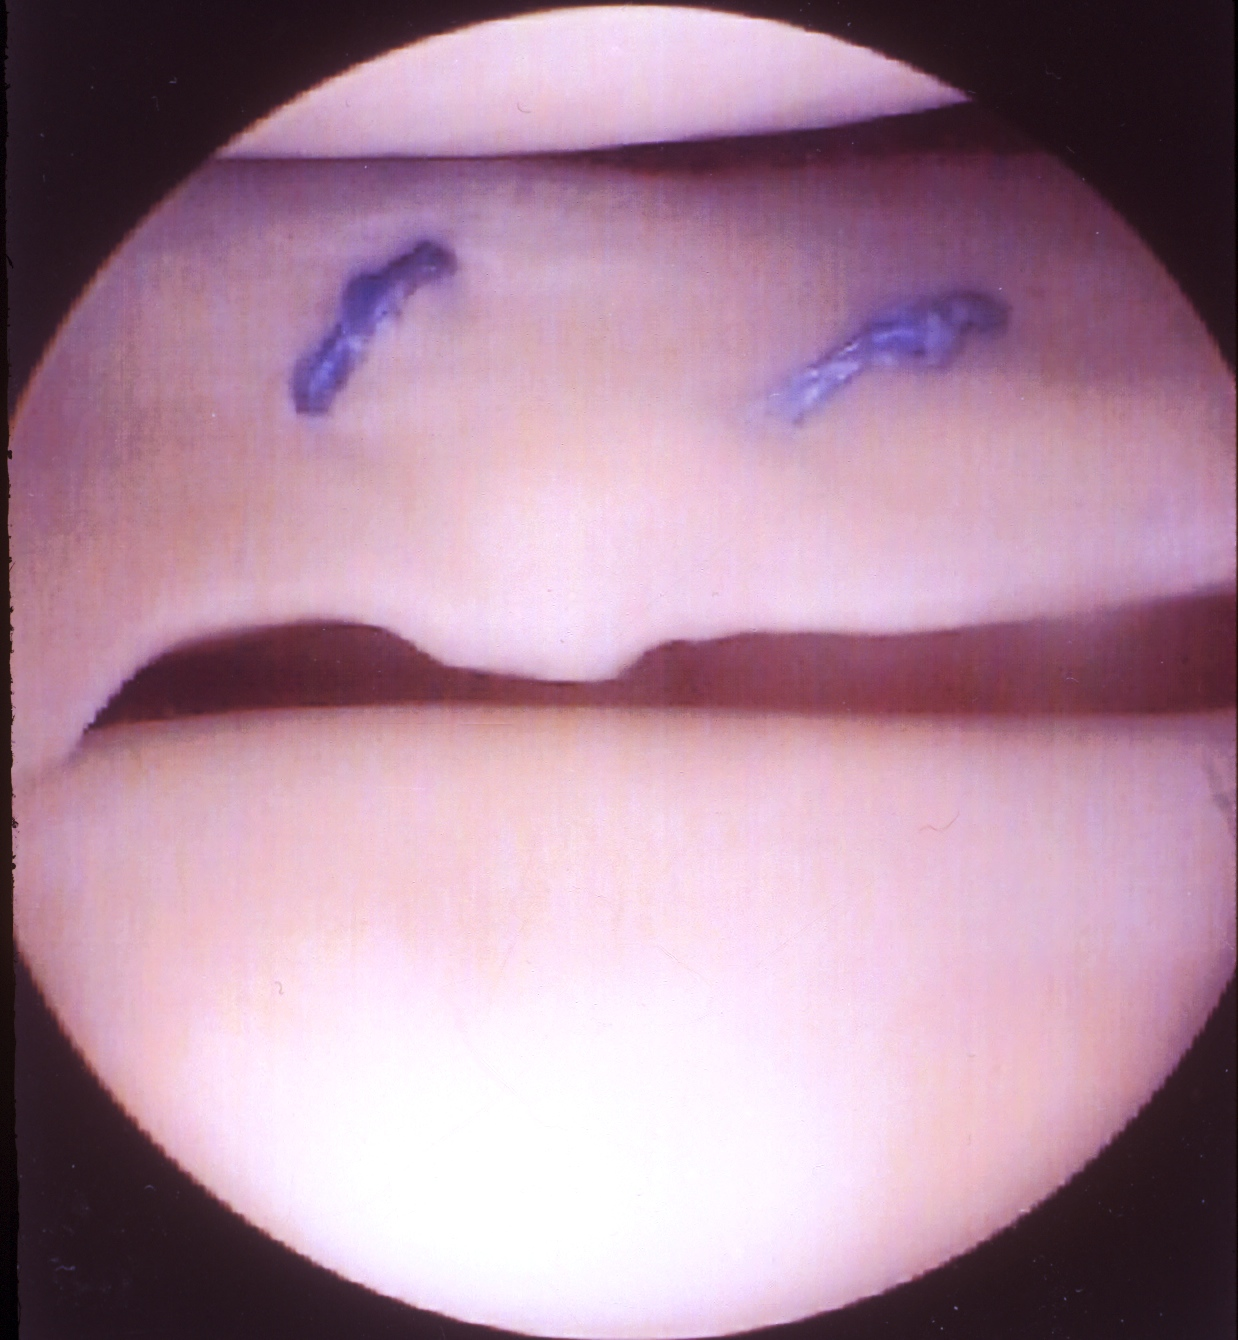 LATERAL MENISCUS TEAR SURGERY RECOVERY